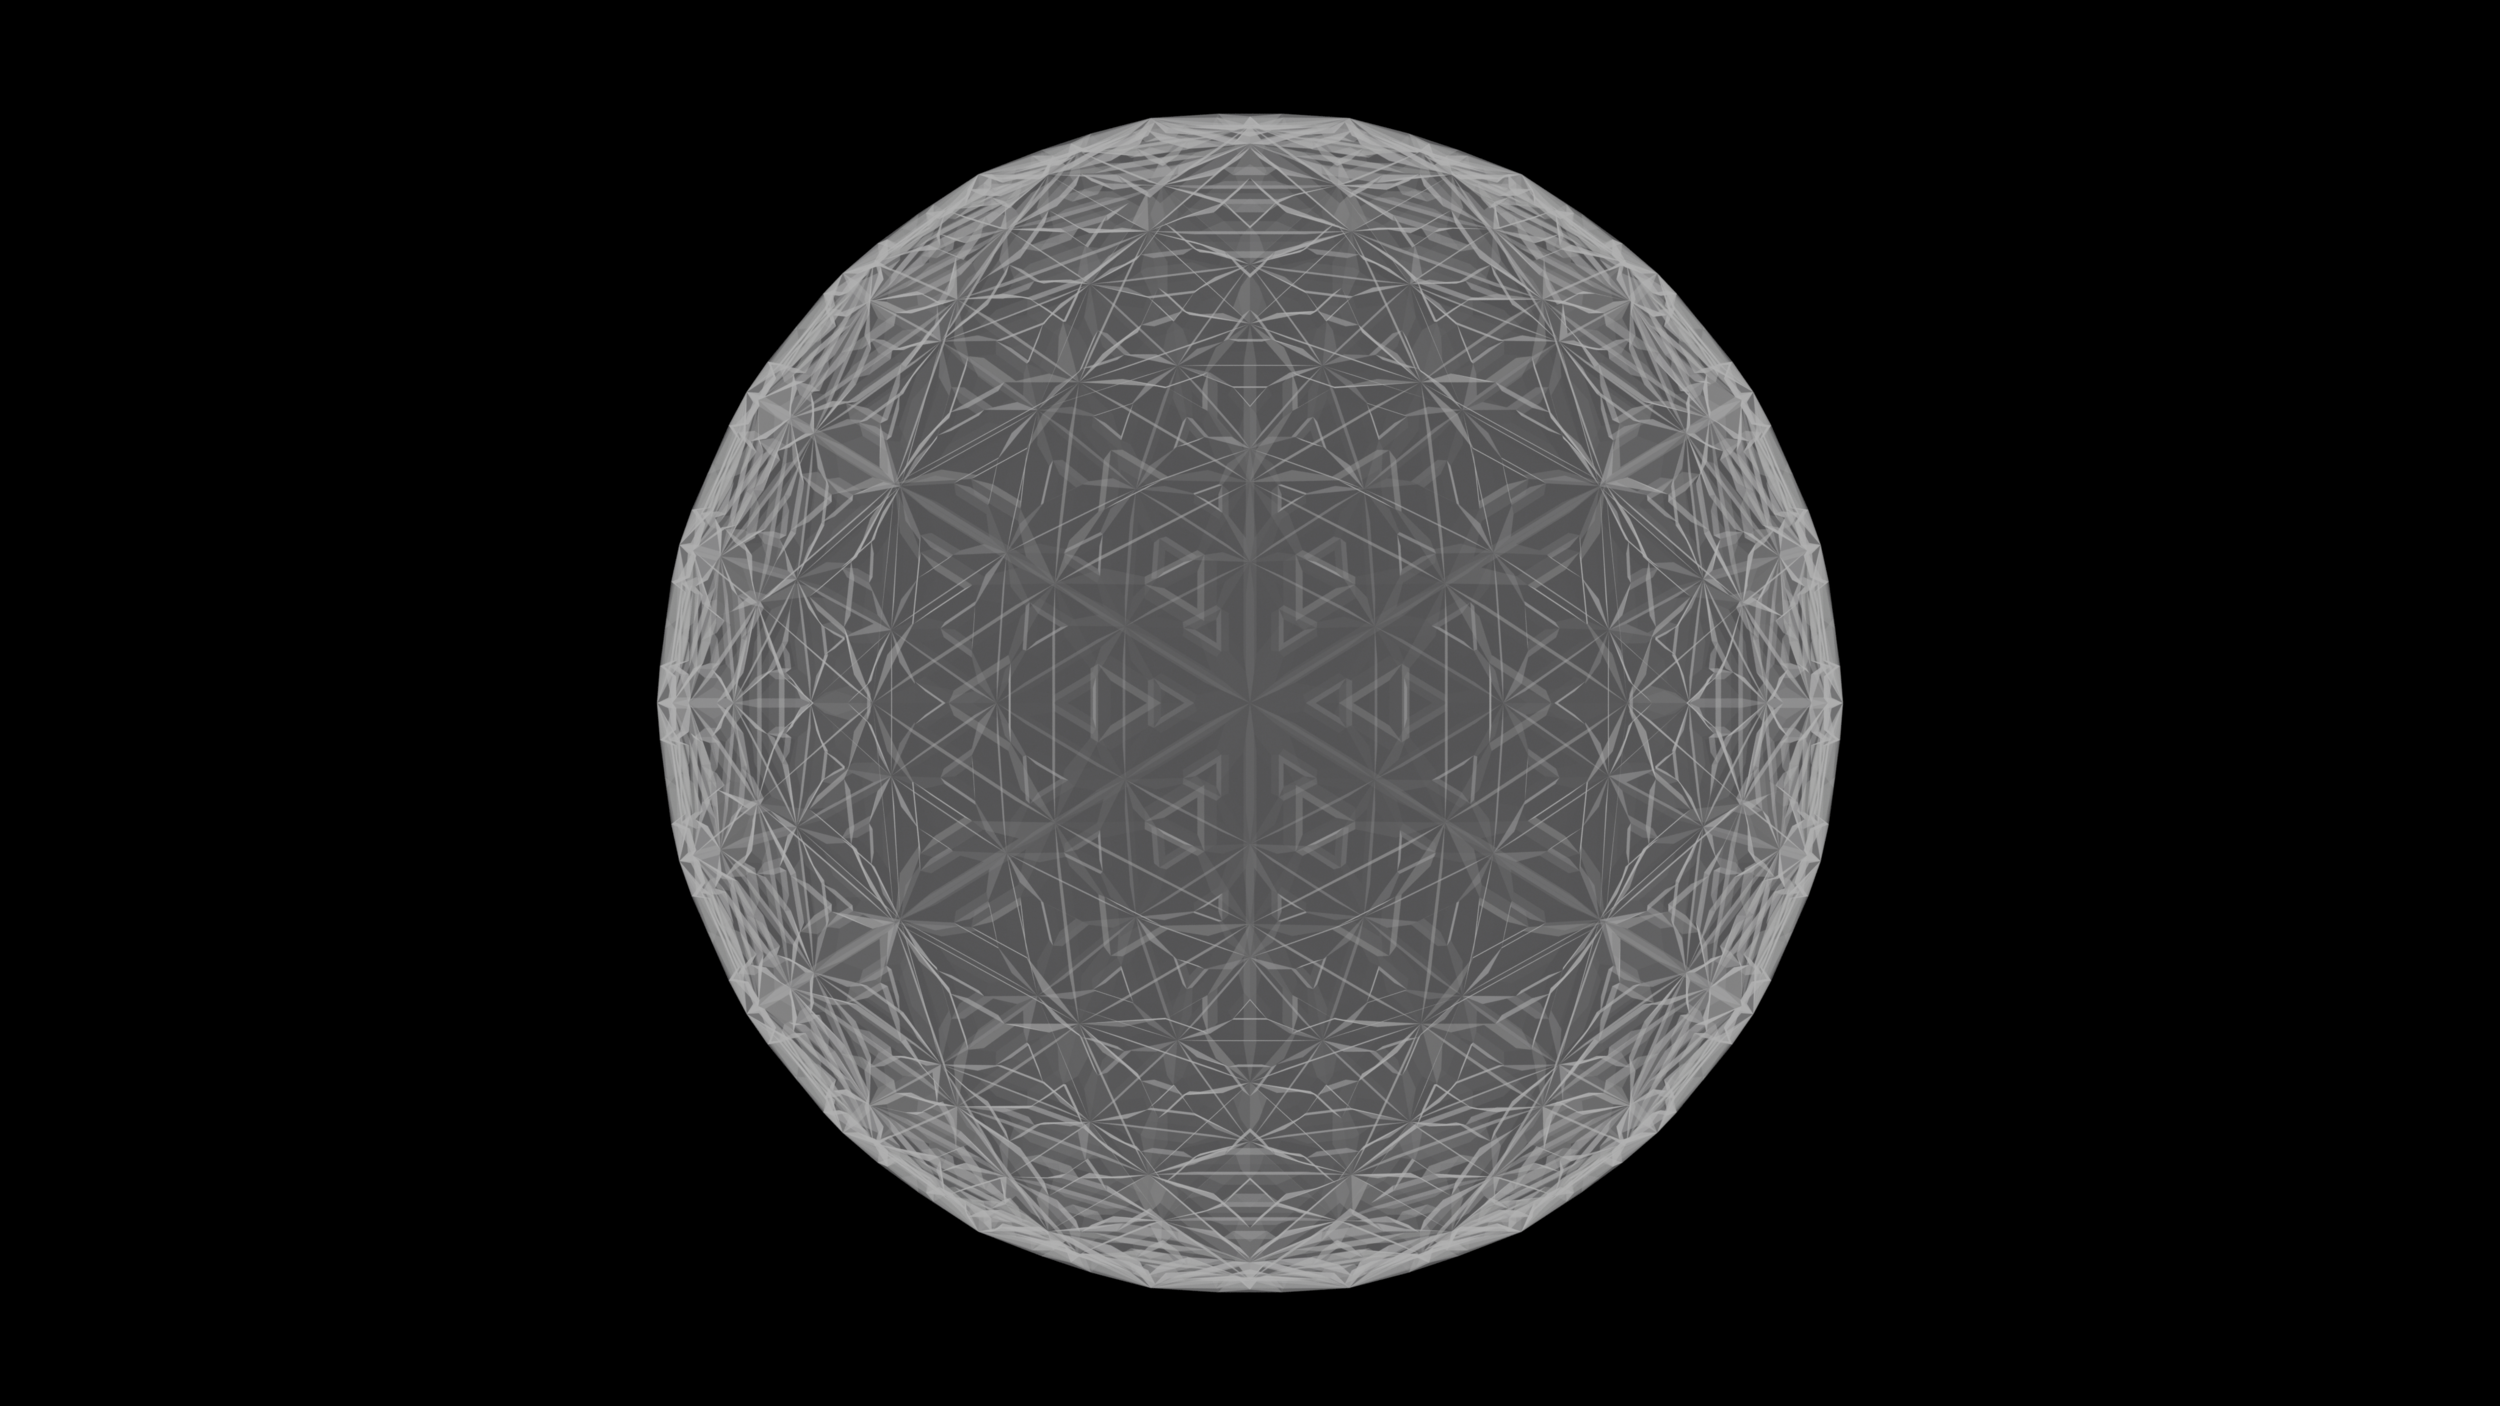 hex sphere fracture 09.png